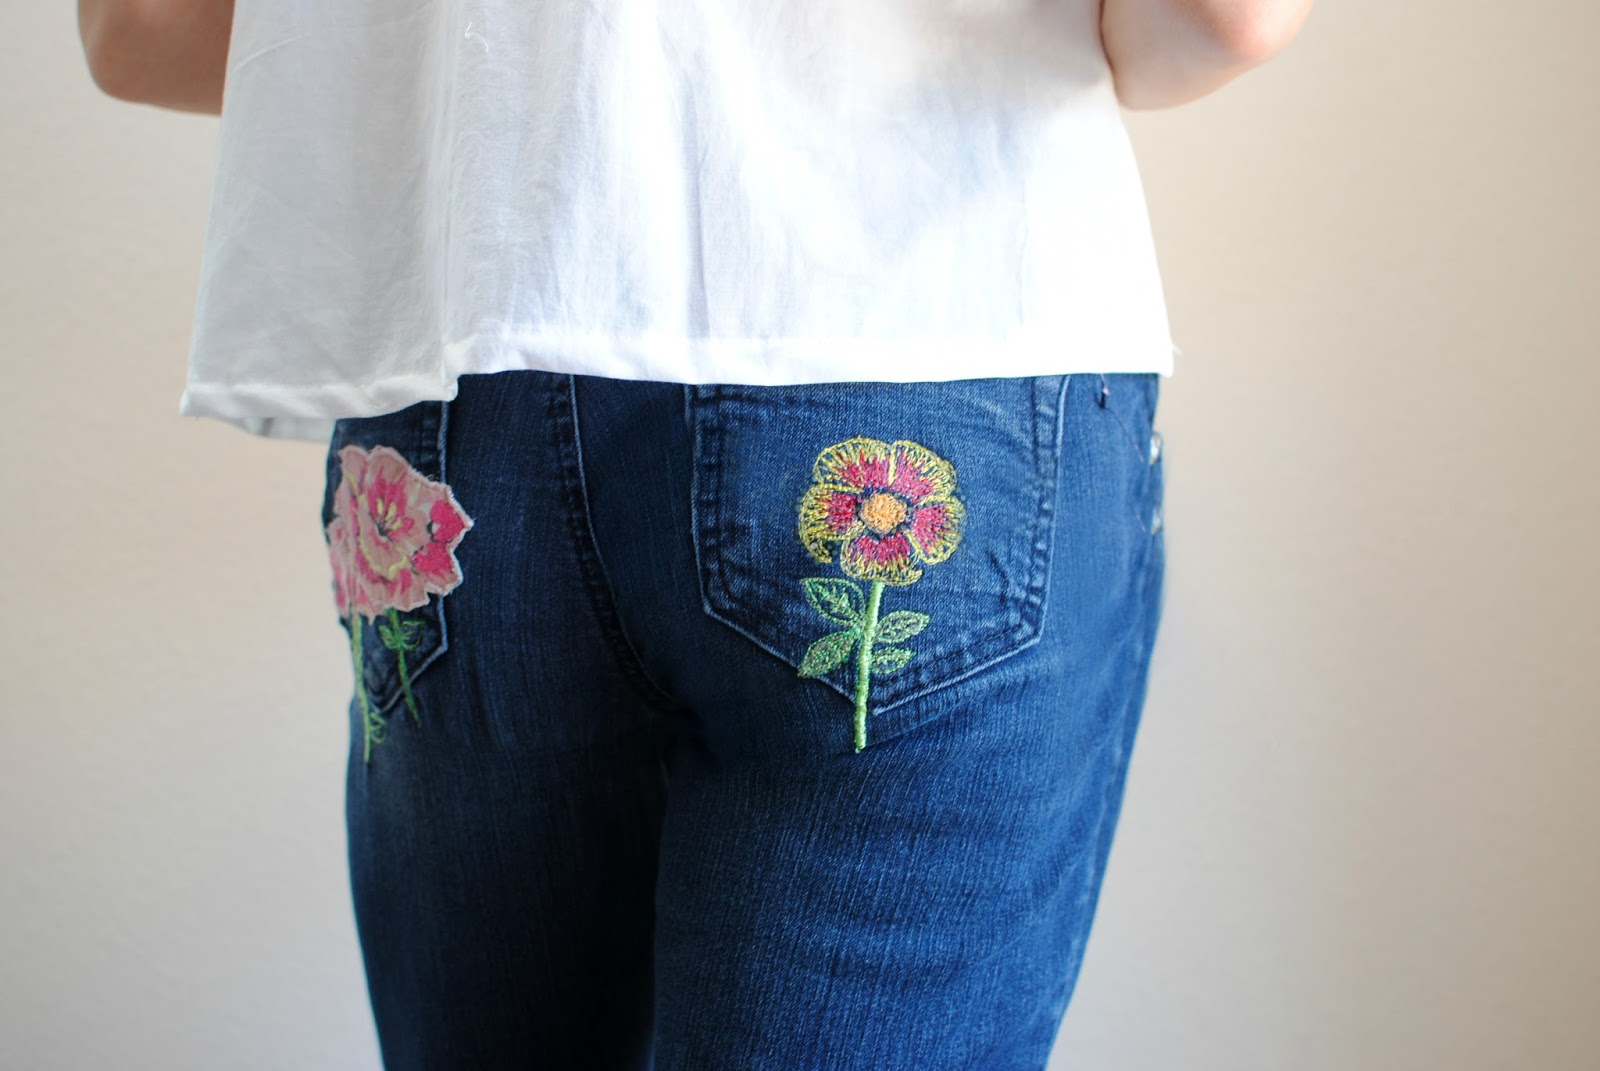 Trash to couture diy custom patches and embroidery with a basic the embroidery and patch trend is here to stay for now and its easier than ever to create your own with just some basic supplies and a sewing machine ccuart Gallery